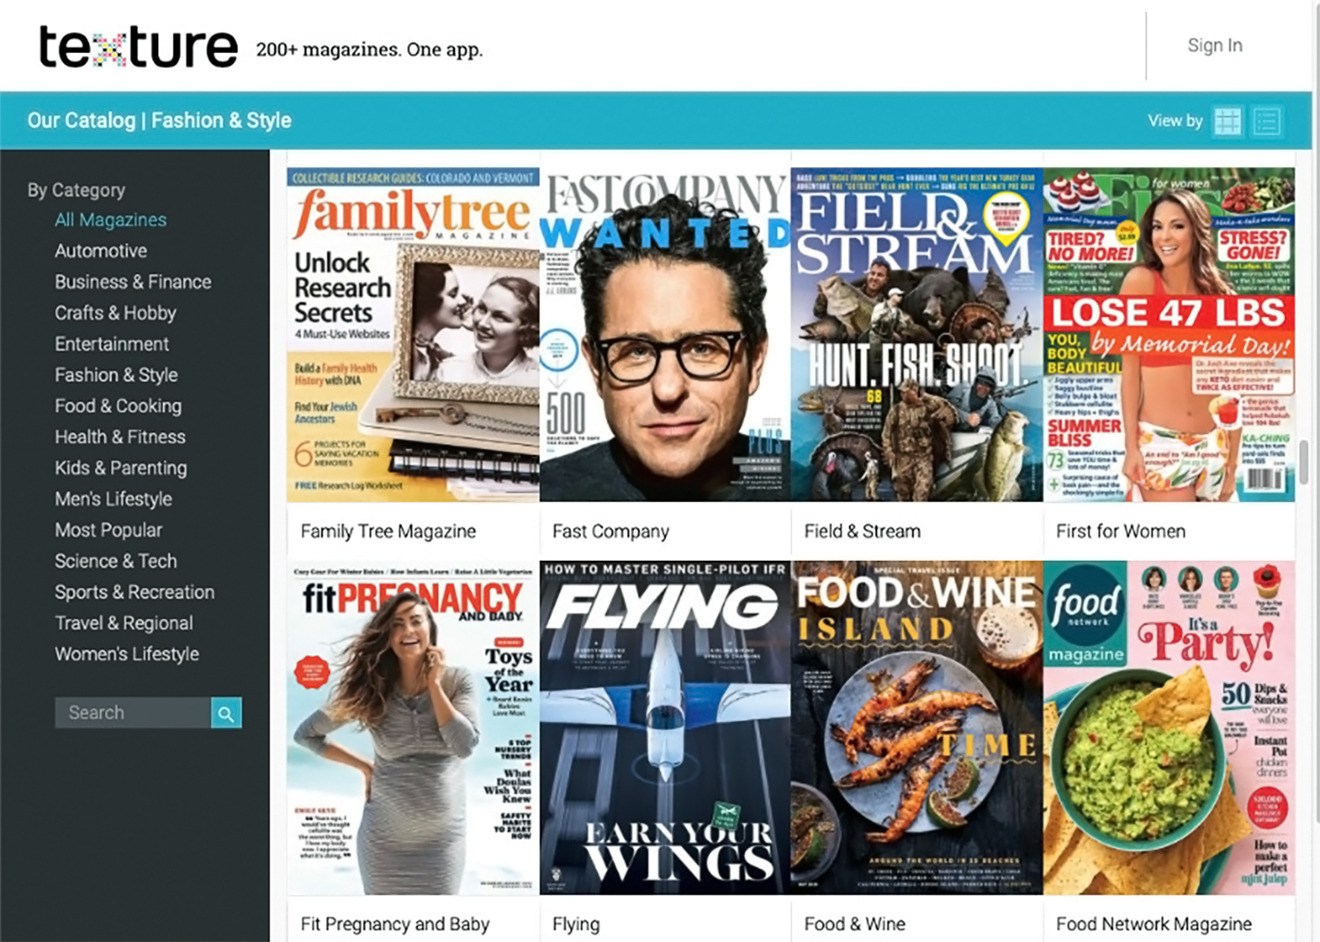 Texture, the digital magazine service Apple purchased and folded into News+